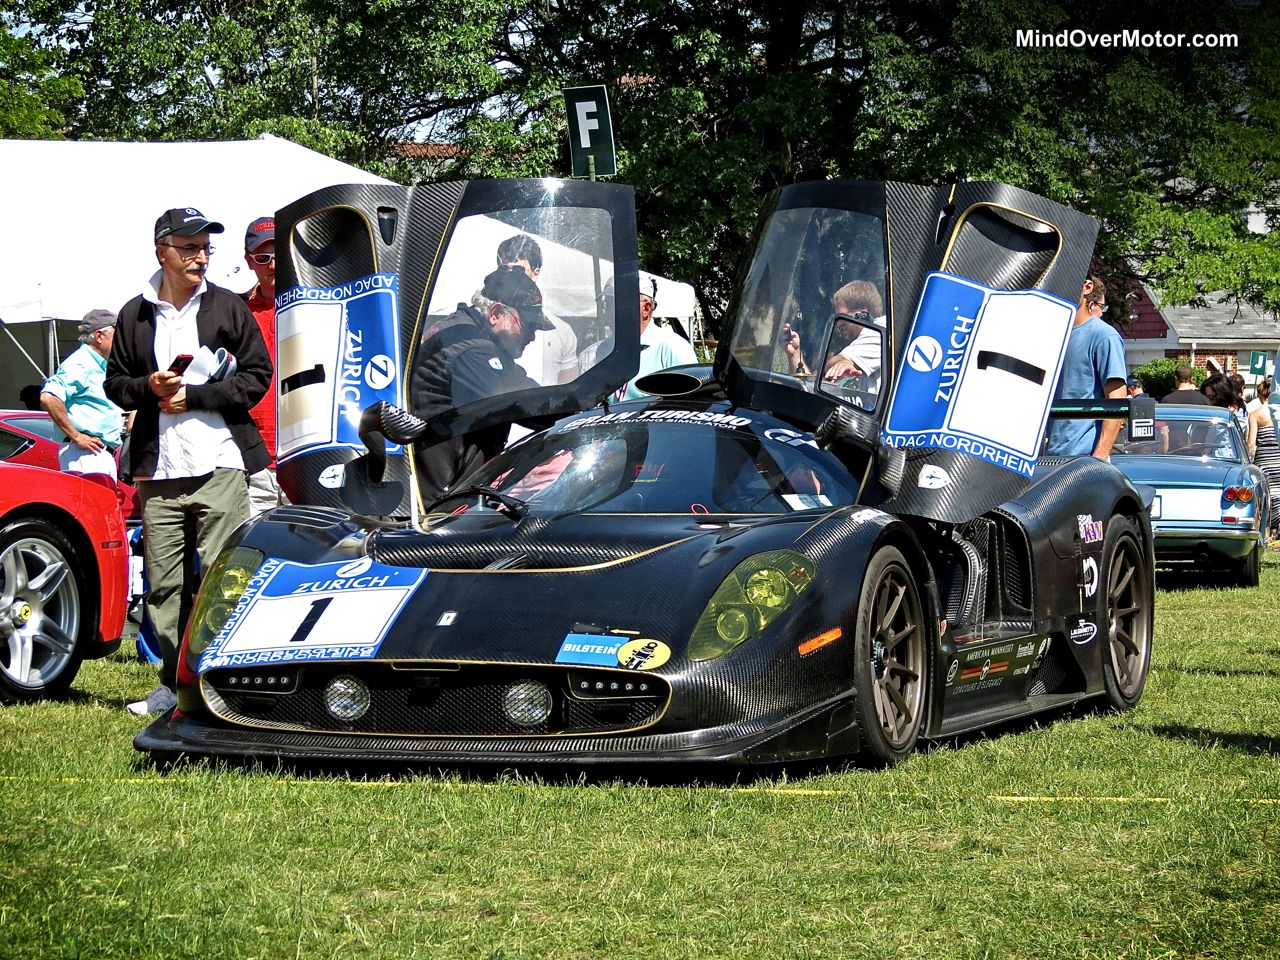 Jim Glickenhaus' P4-5 Competizione at the Greenwich Concours